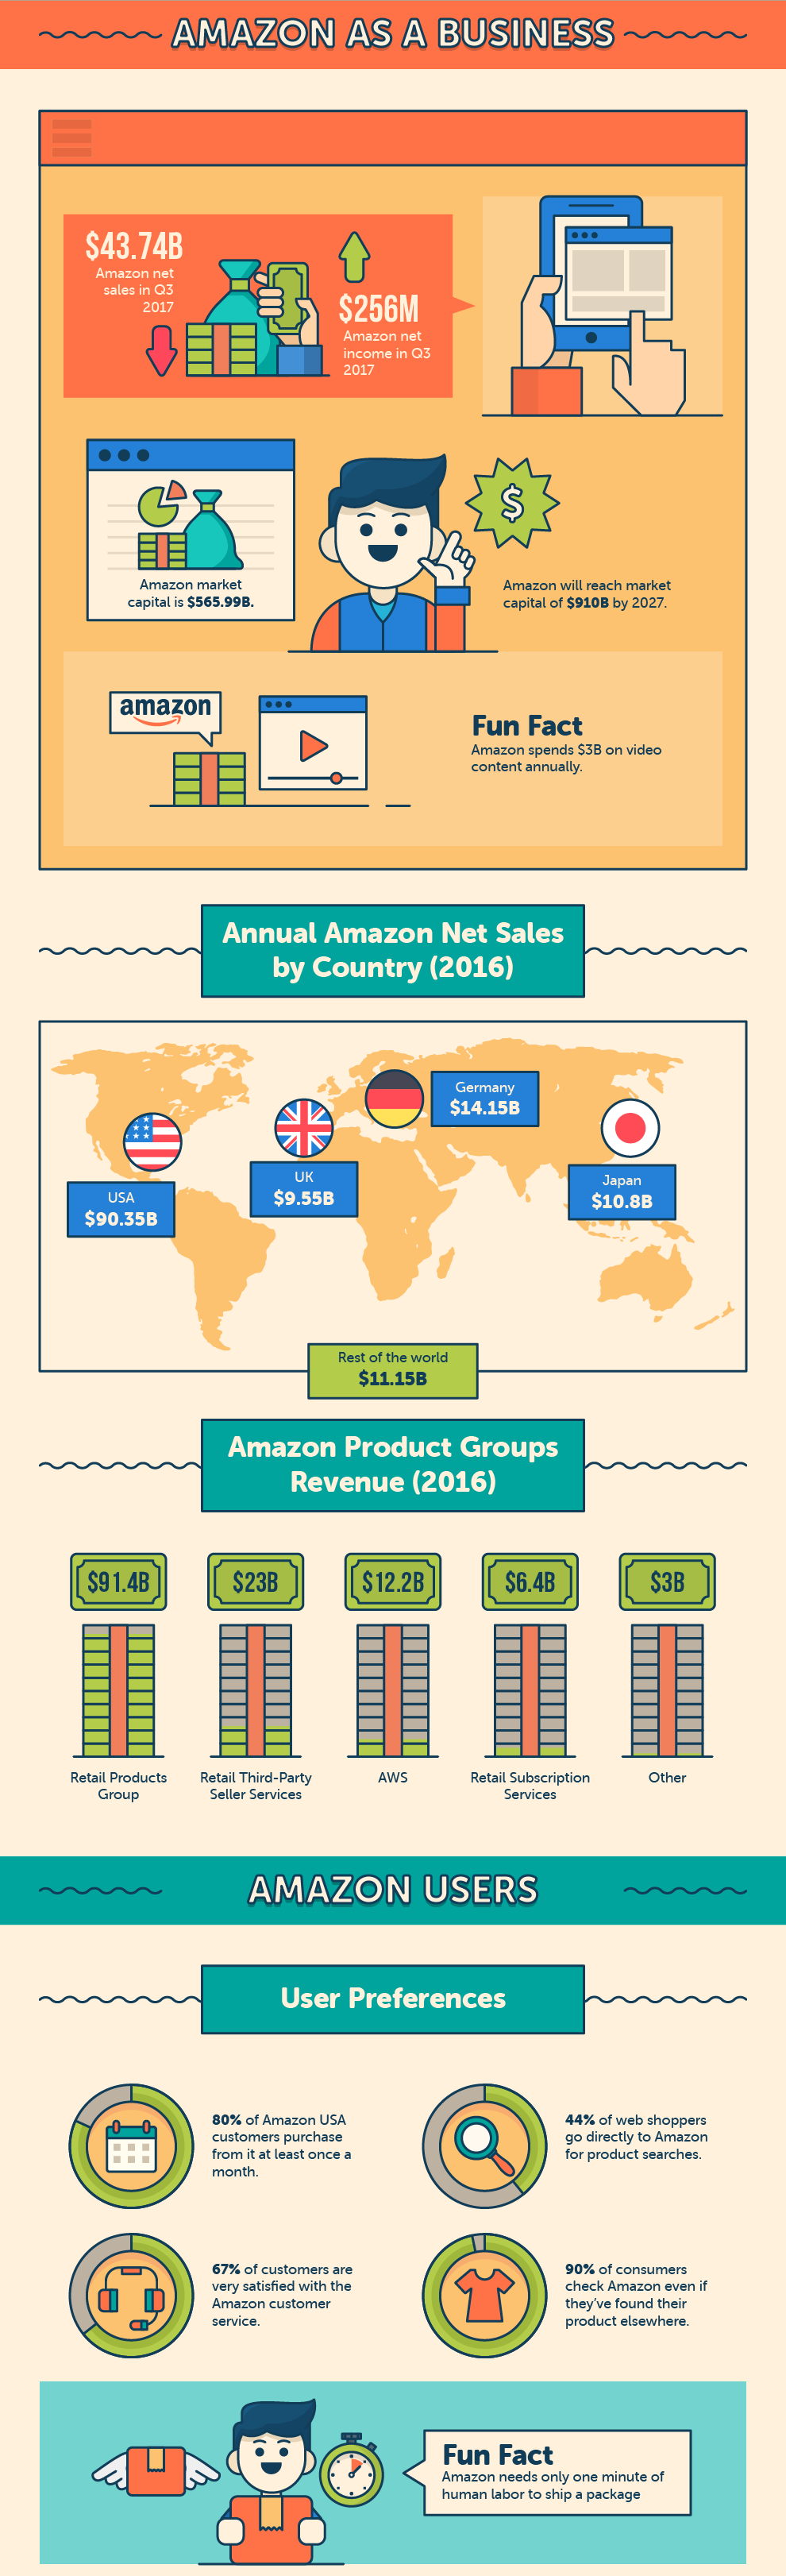 amazon_business3